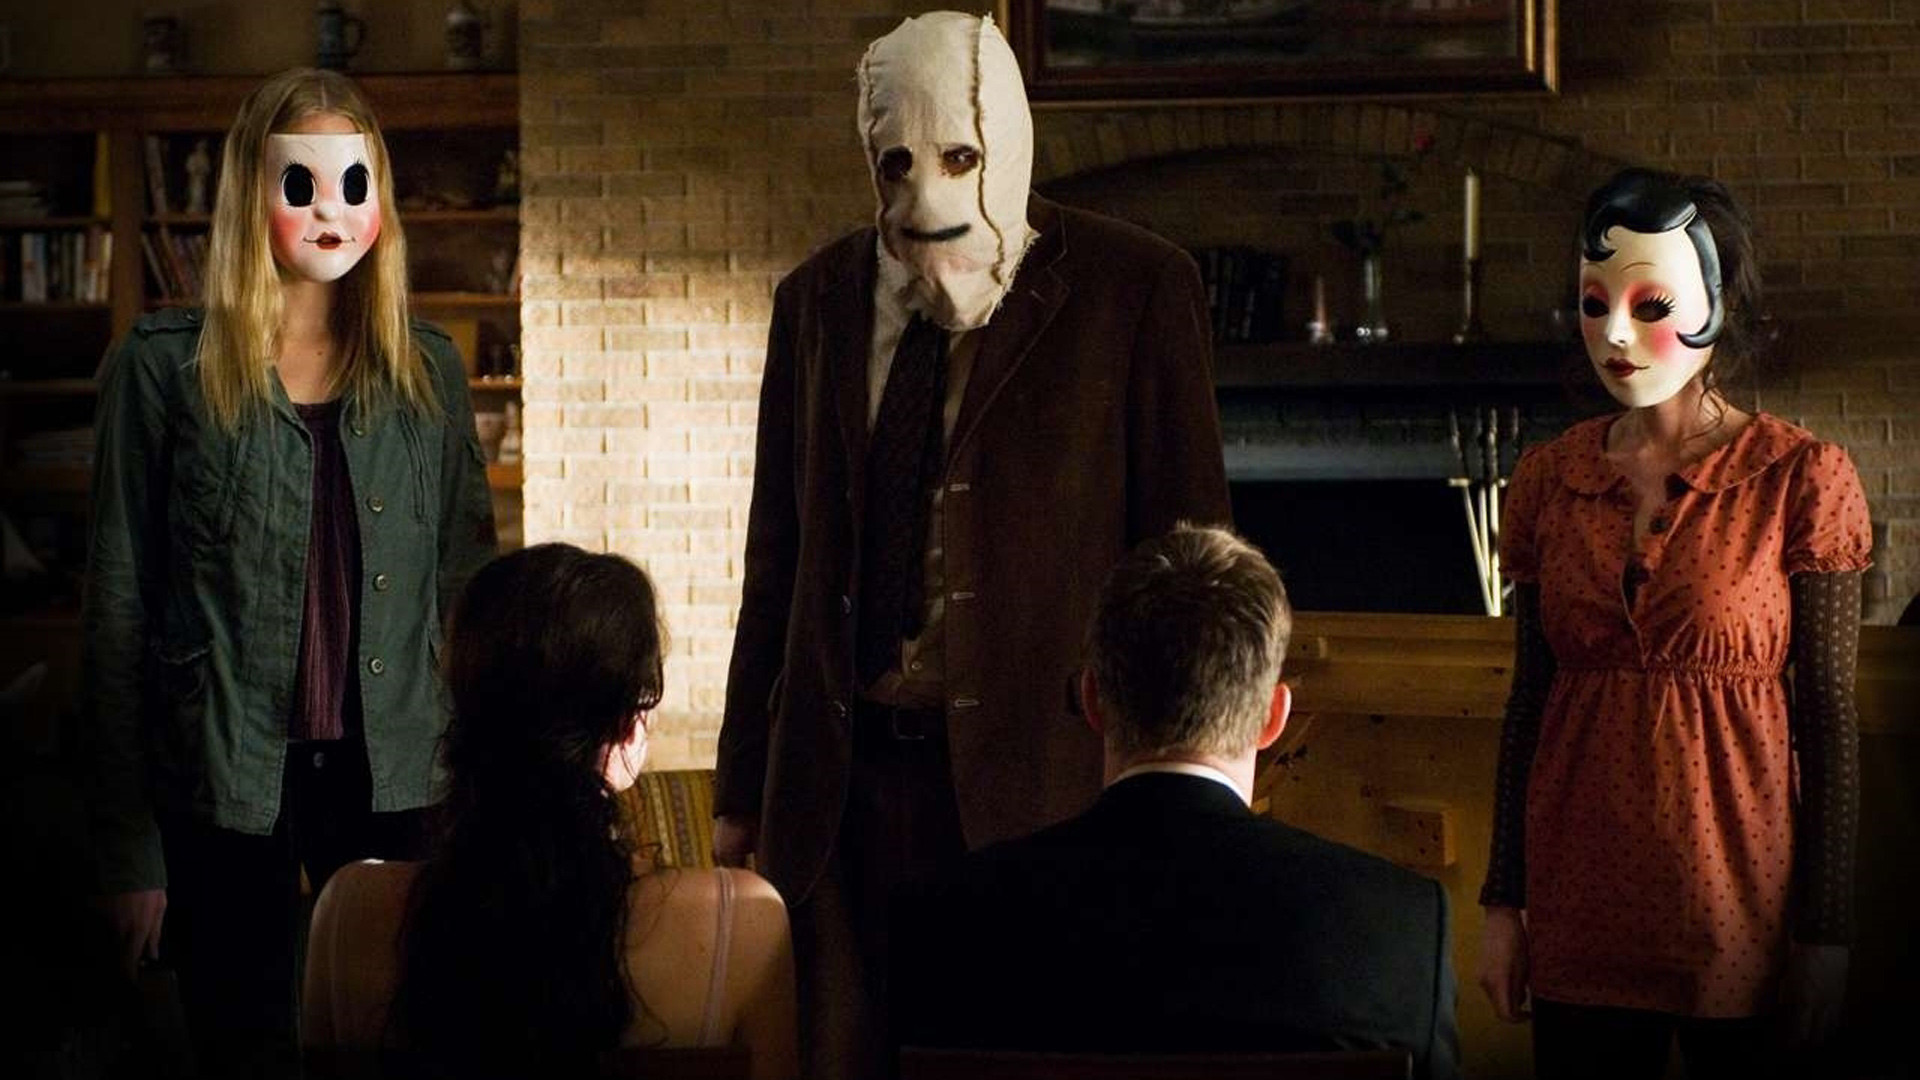 THE STRANGERS 2 MOST ANTICIPATED HORROR MOVIES 2016